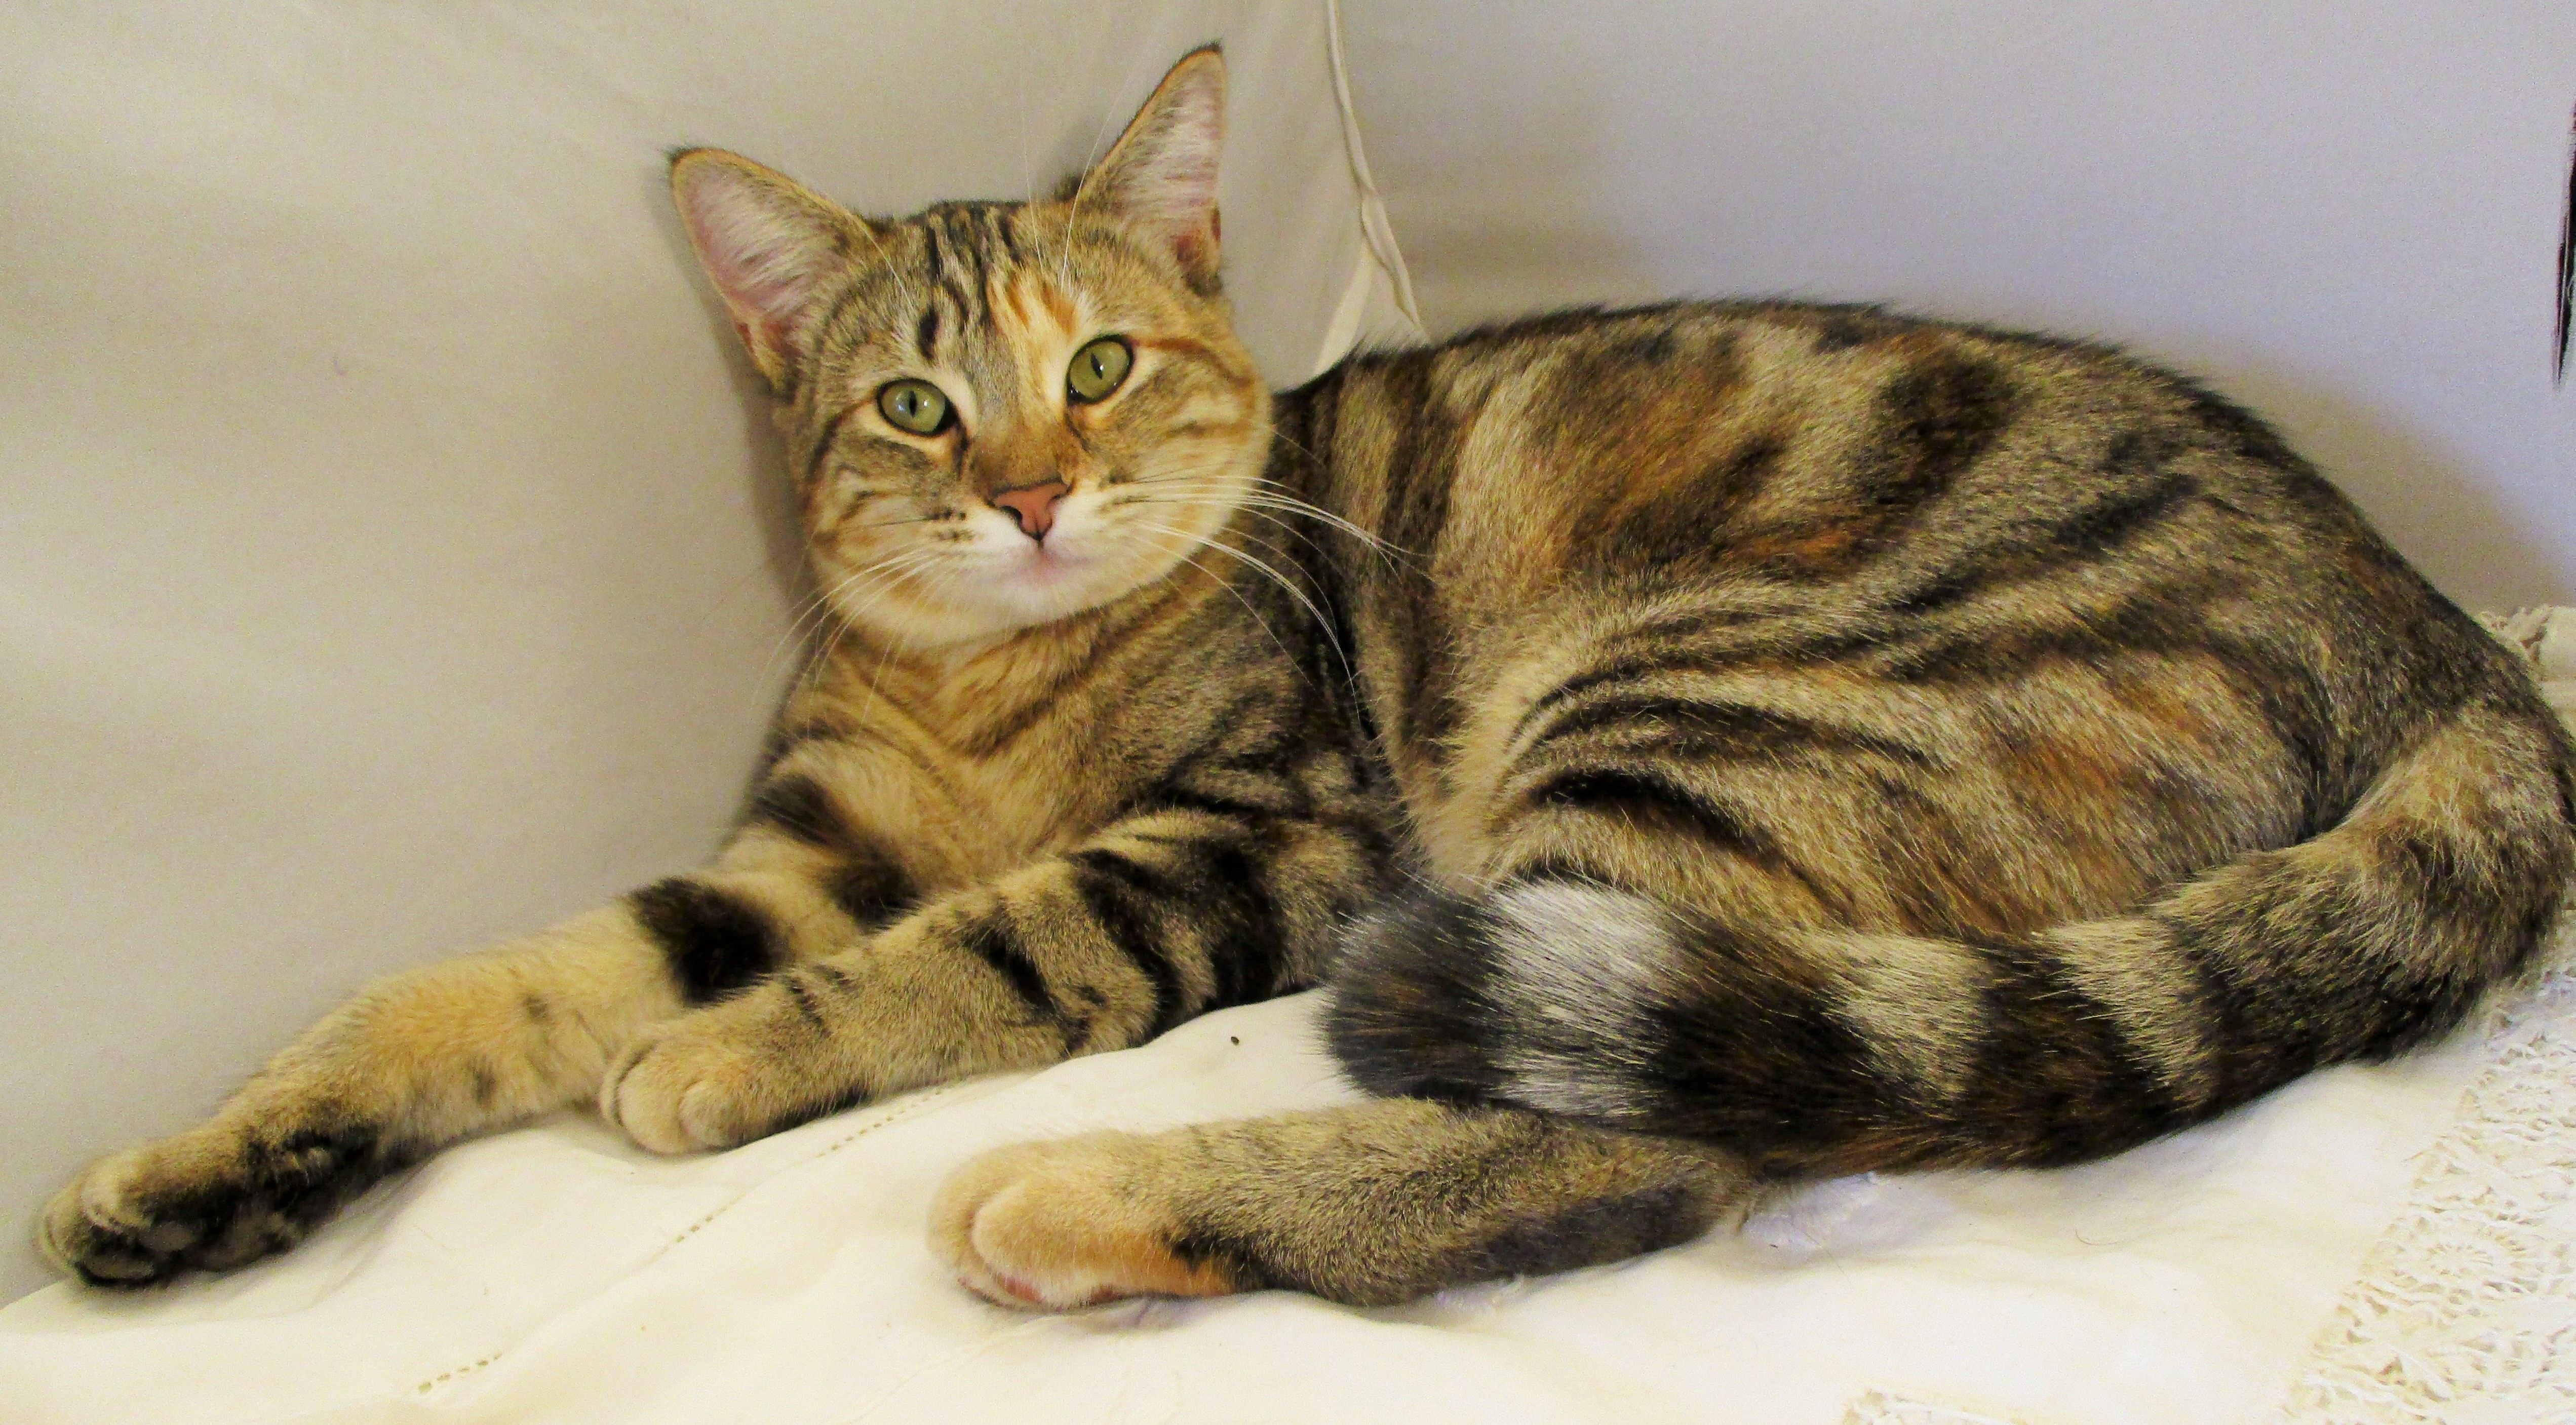 My Calico Bengal Mix Rescue Cat 1 Year Old Bengal Kittens For Sale Bengal Cat Calico Kitten